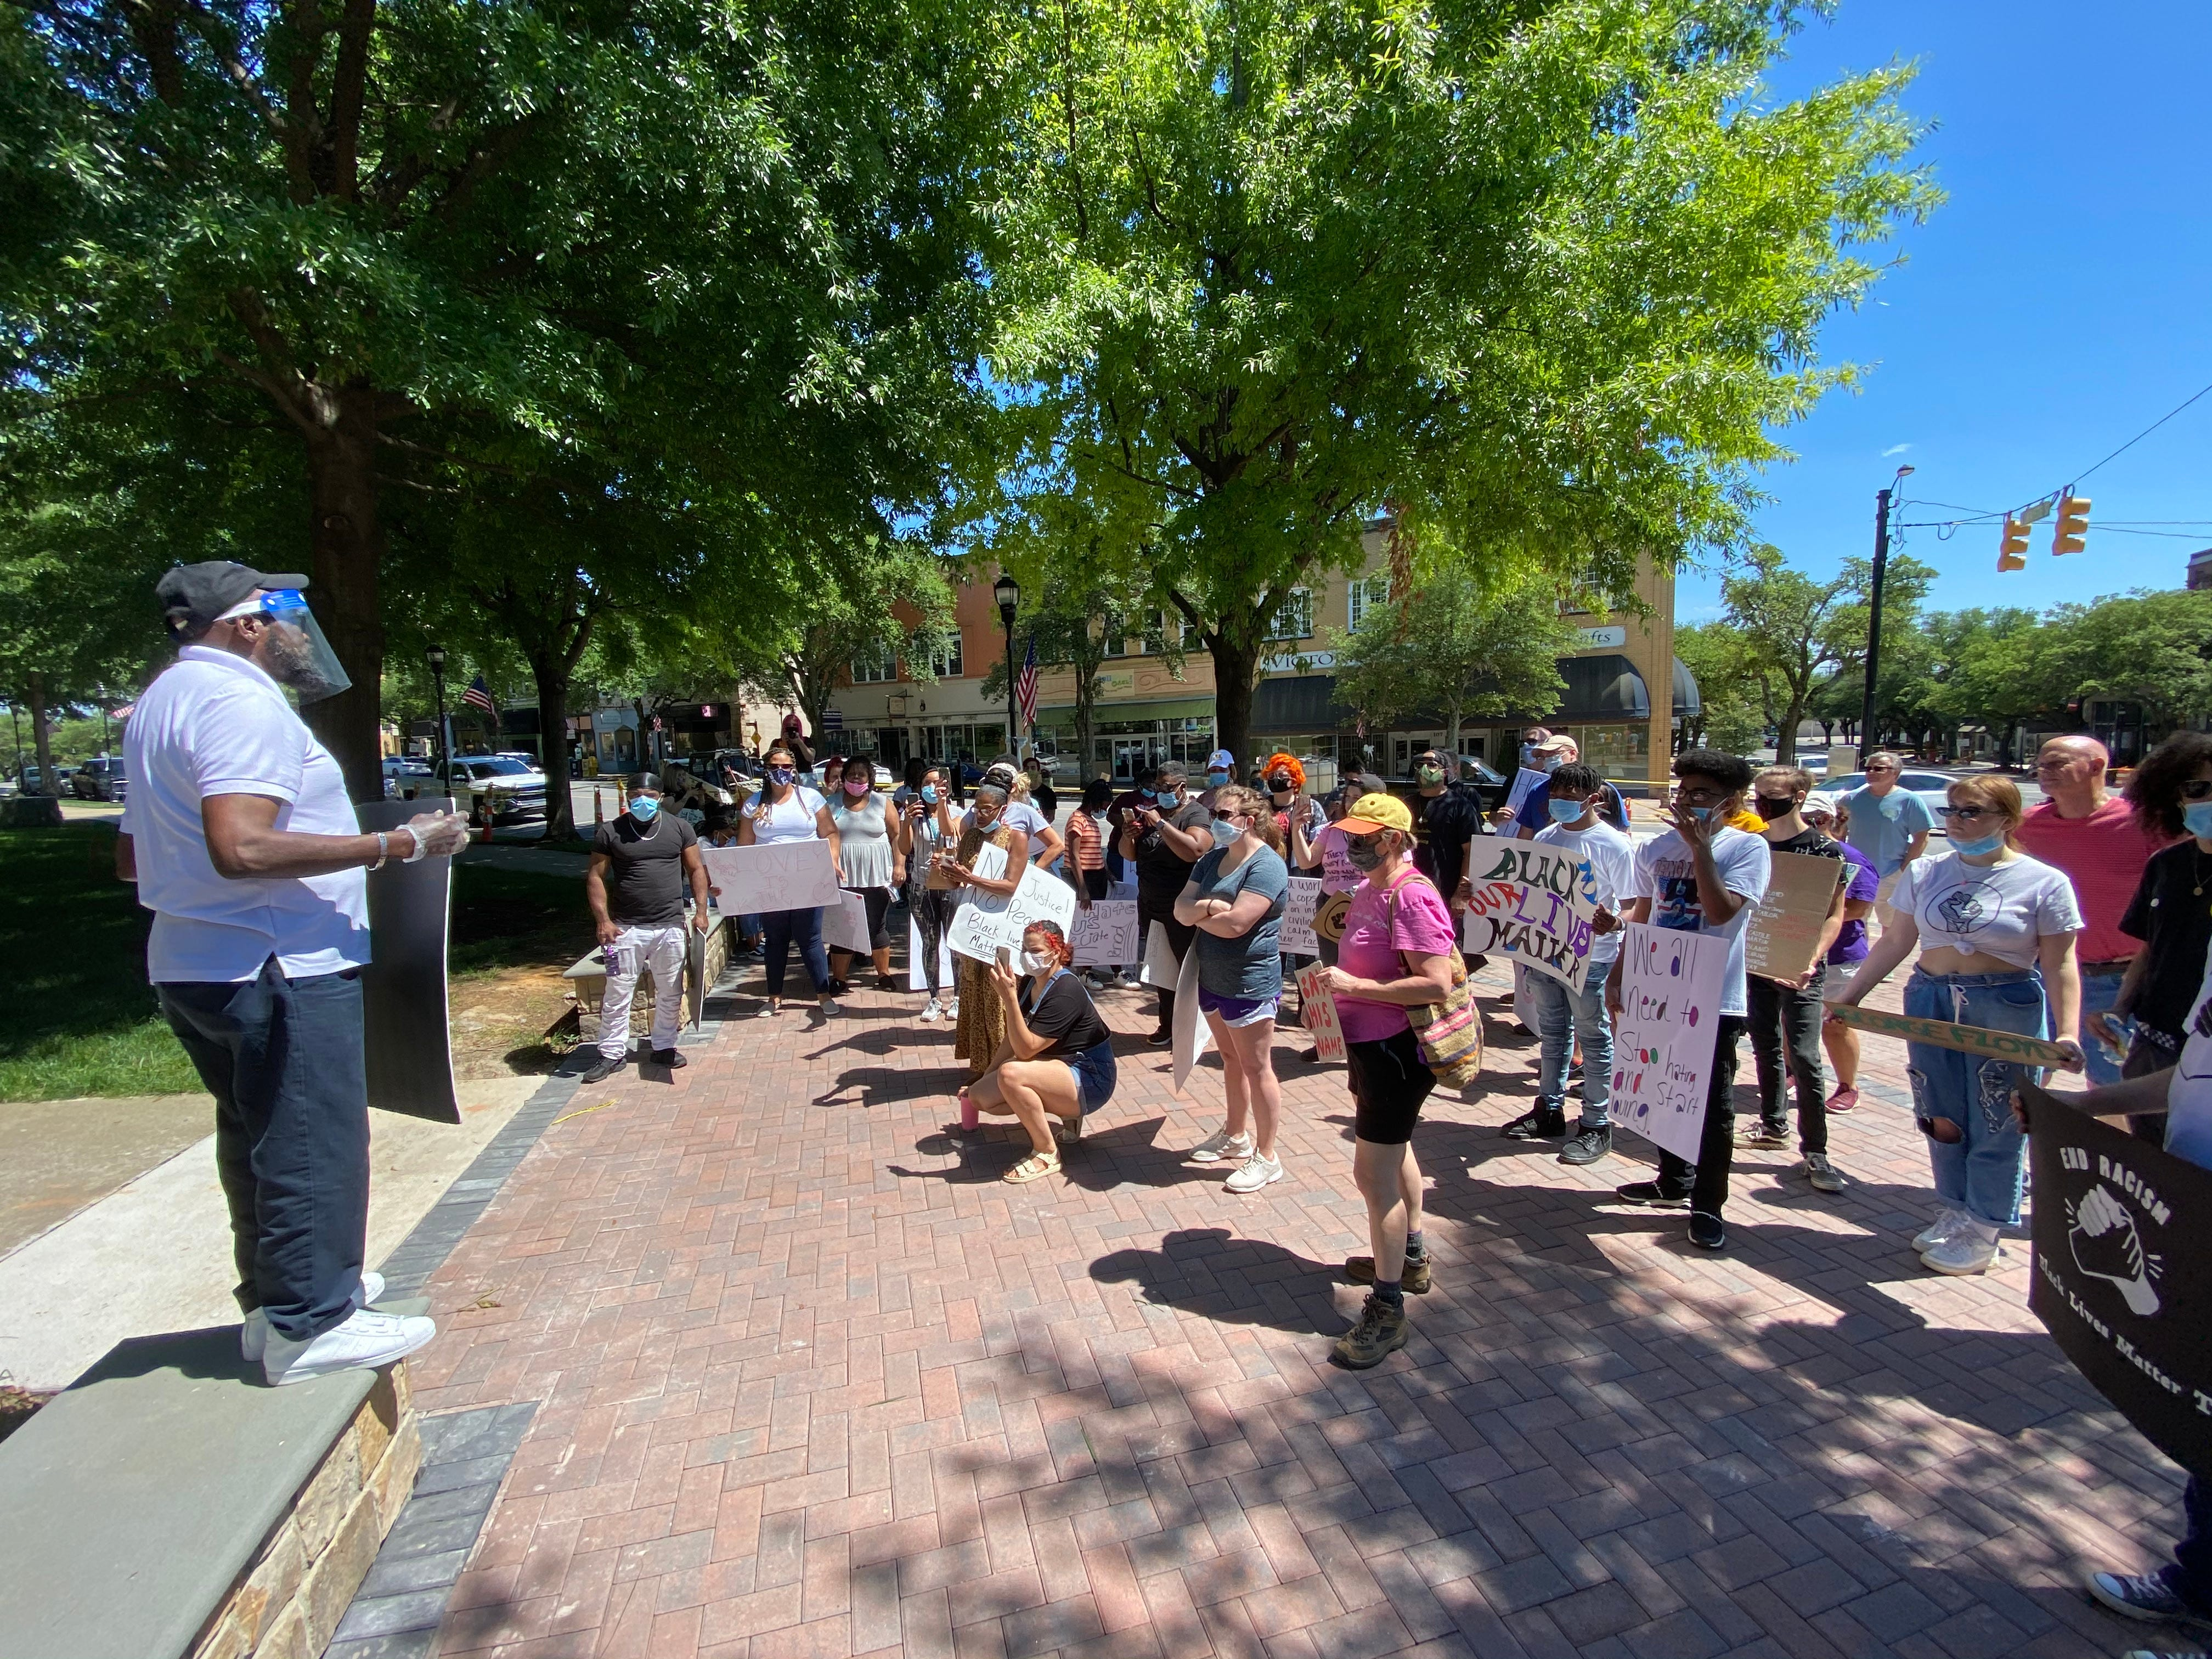 The Rev. Billy Houze speaks to a group of protestors that assembled Sunday.